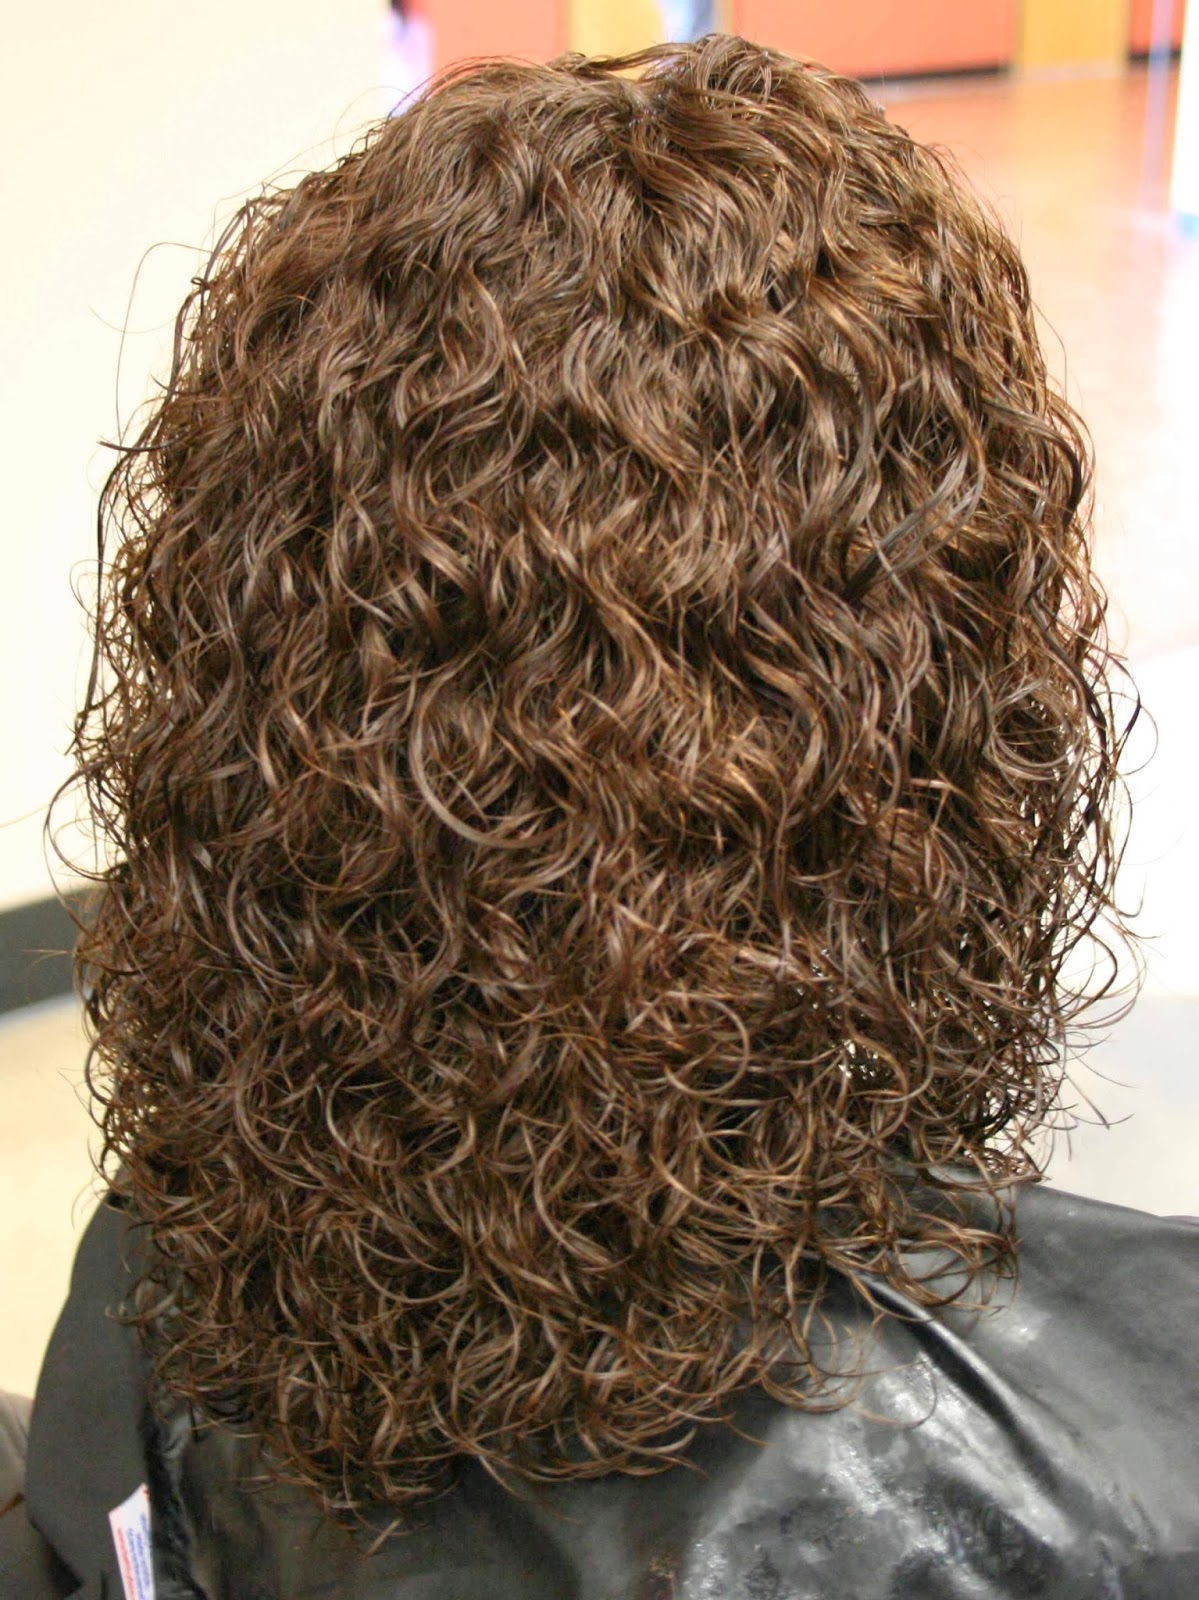 perm that took stronger on the ends due to the hair being more porous